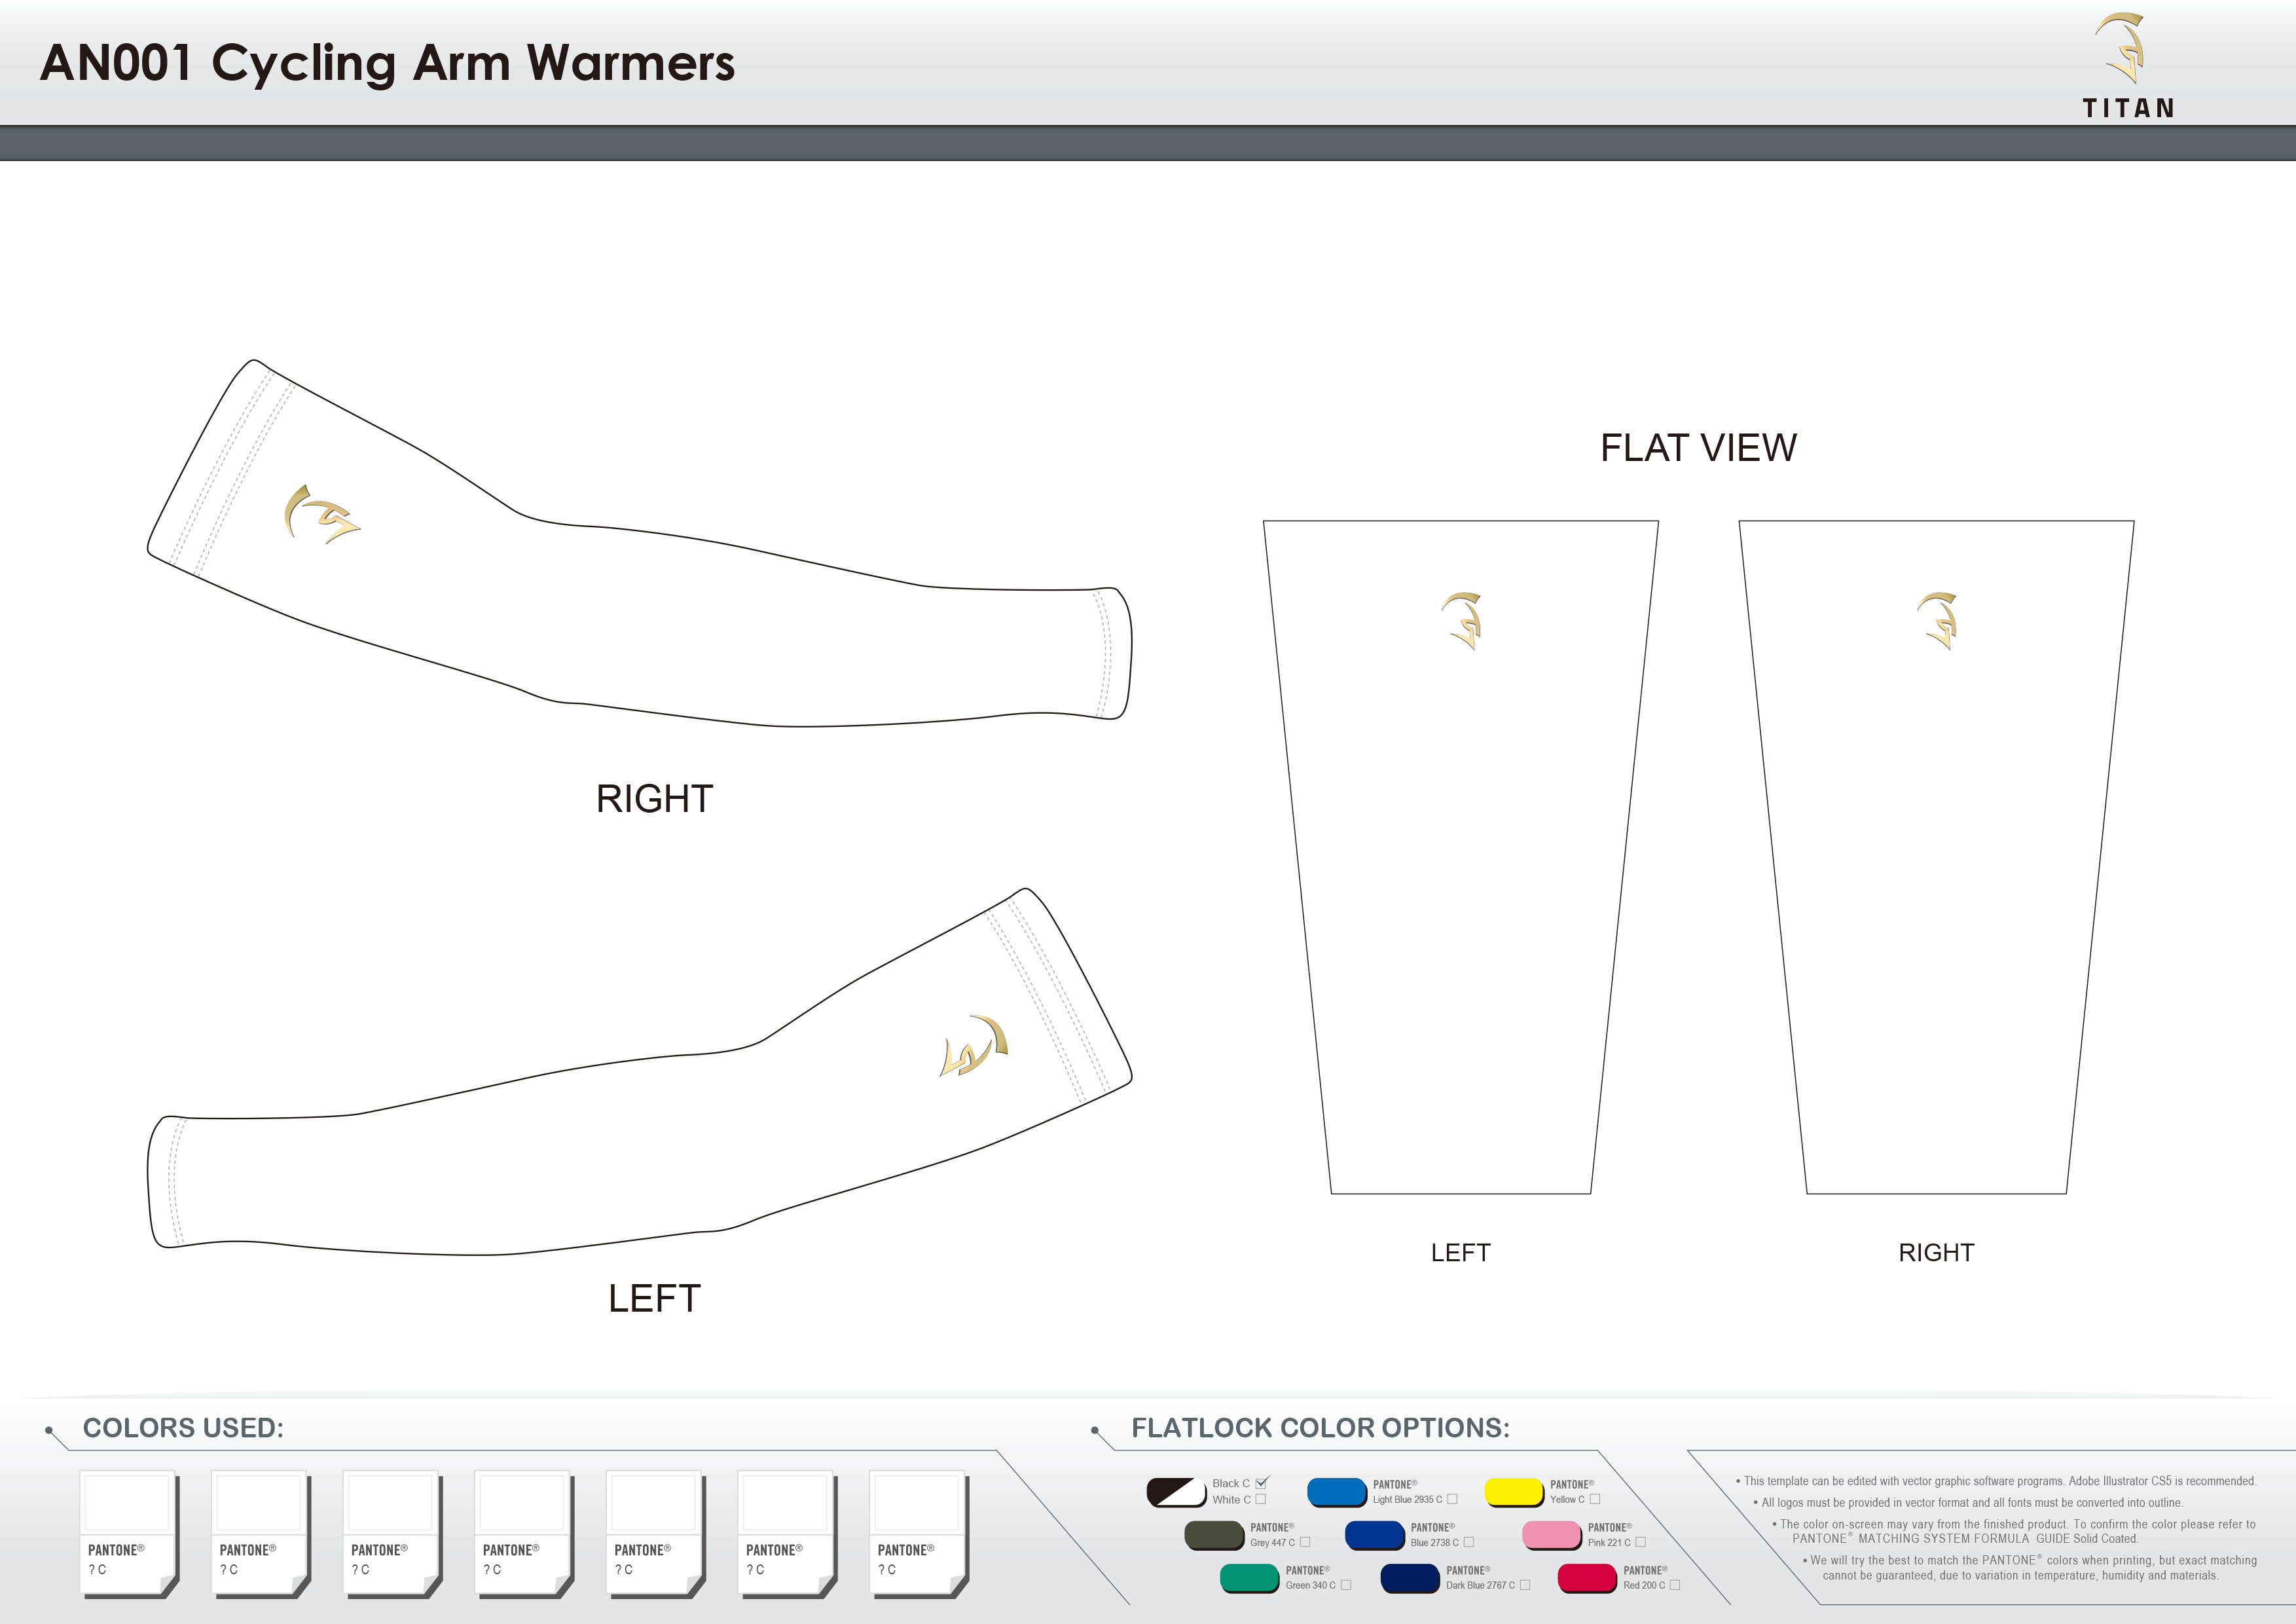 AN001 Cycling Arm Warmers